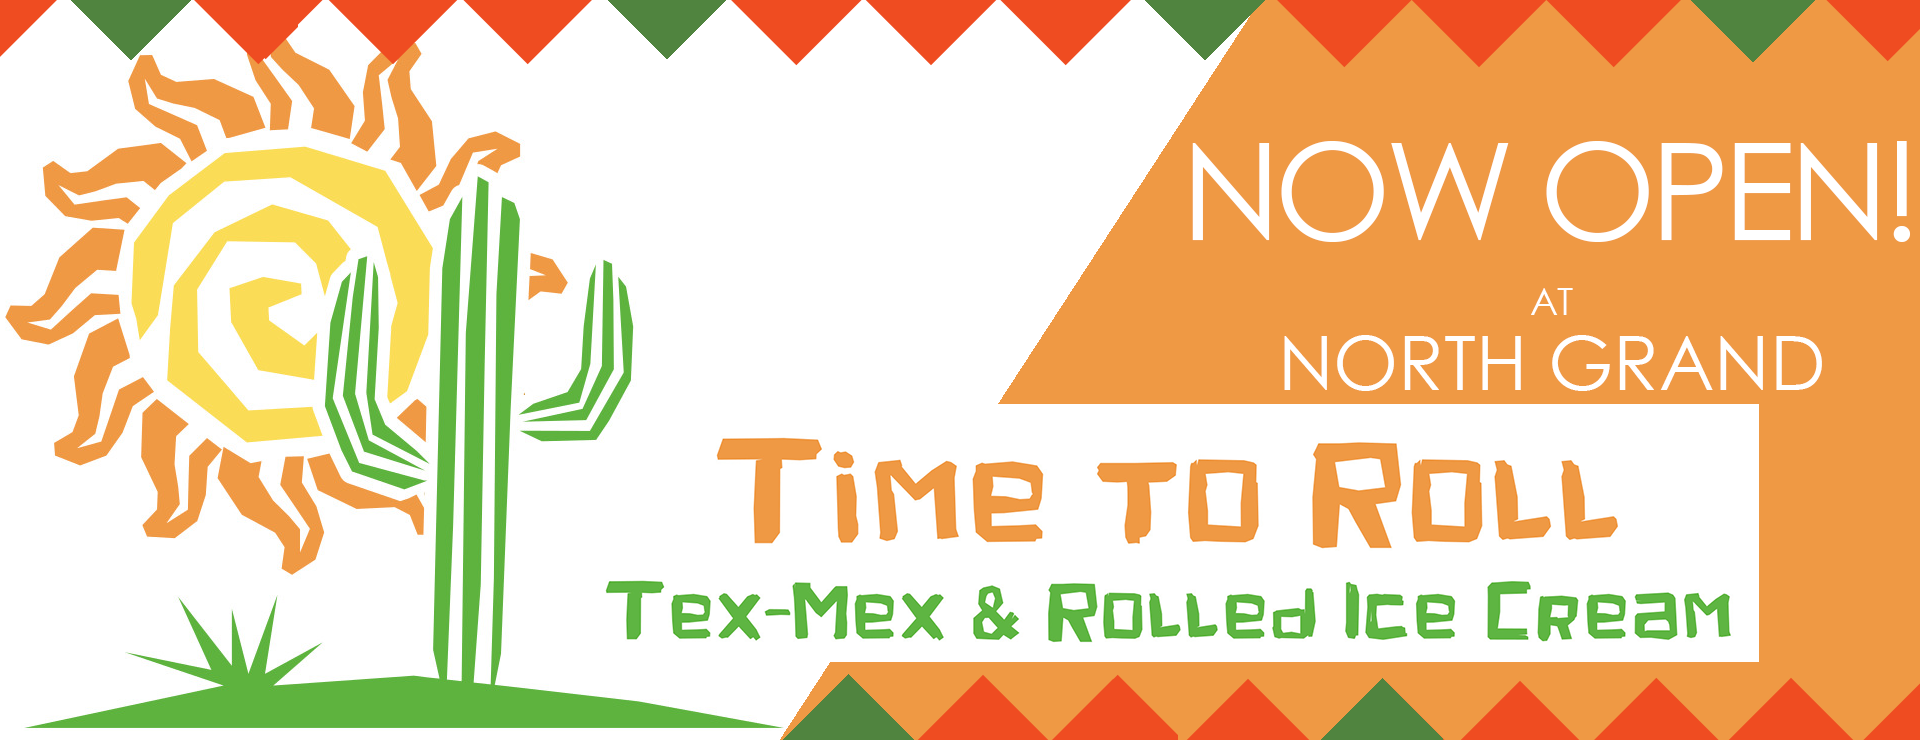 NGM-Slider Time to Roll NOW OPEN!